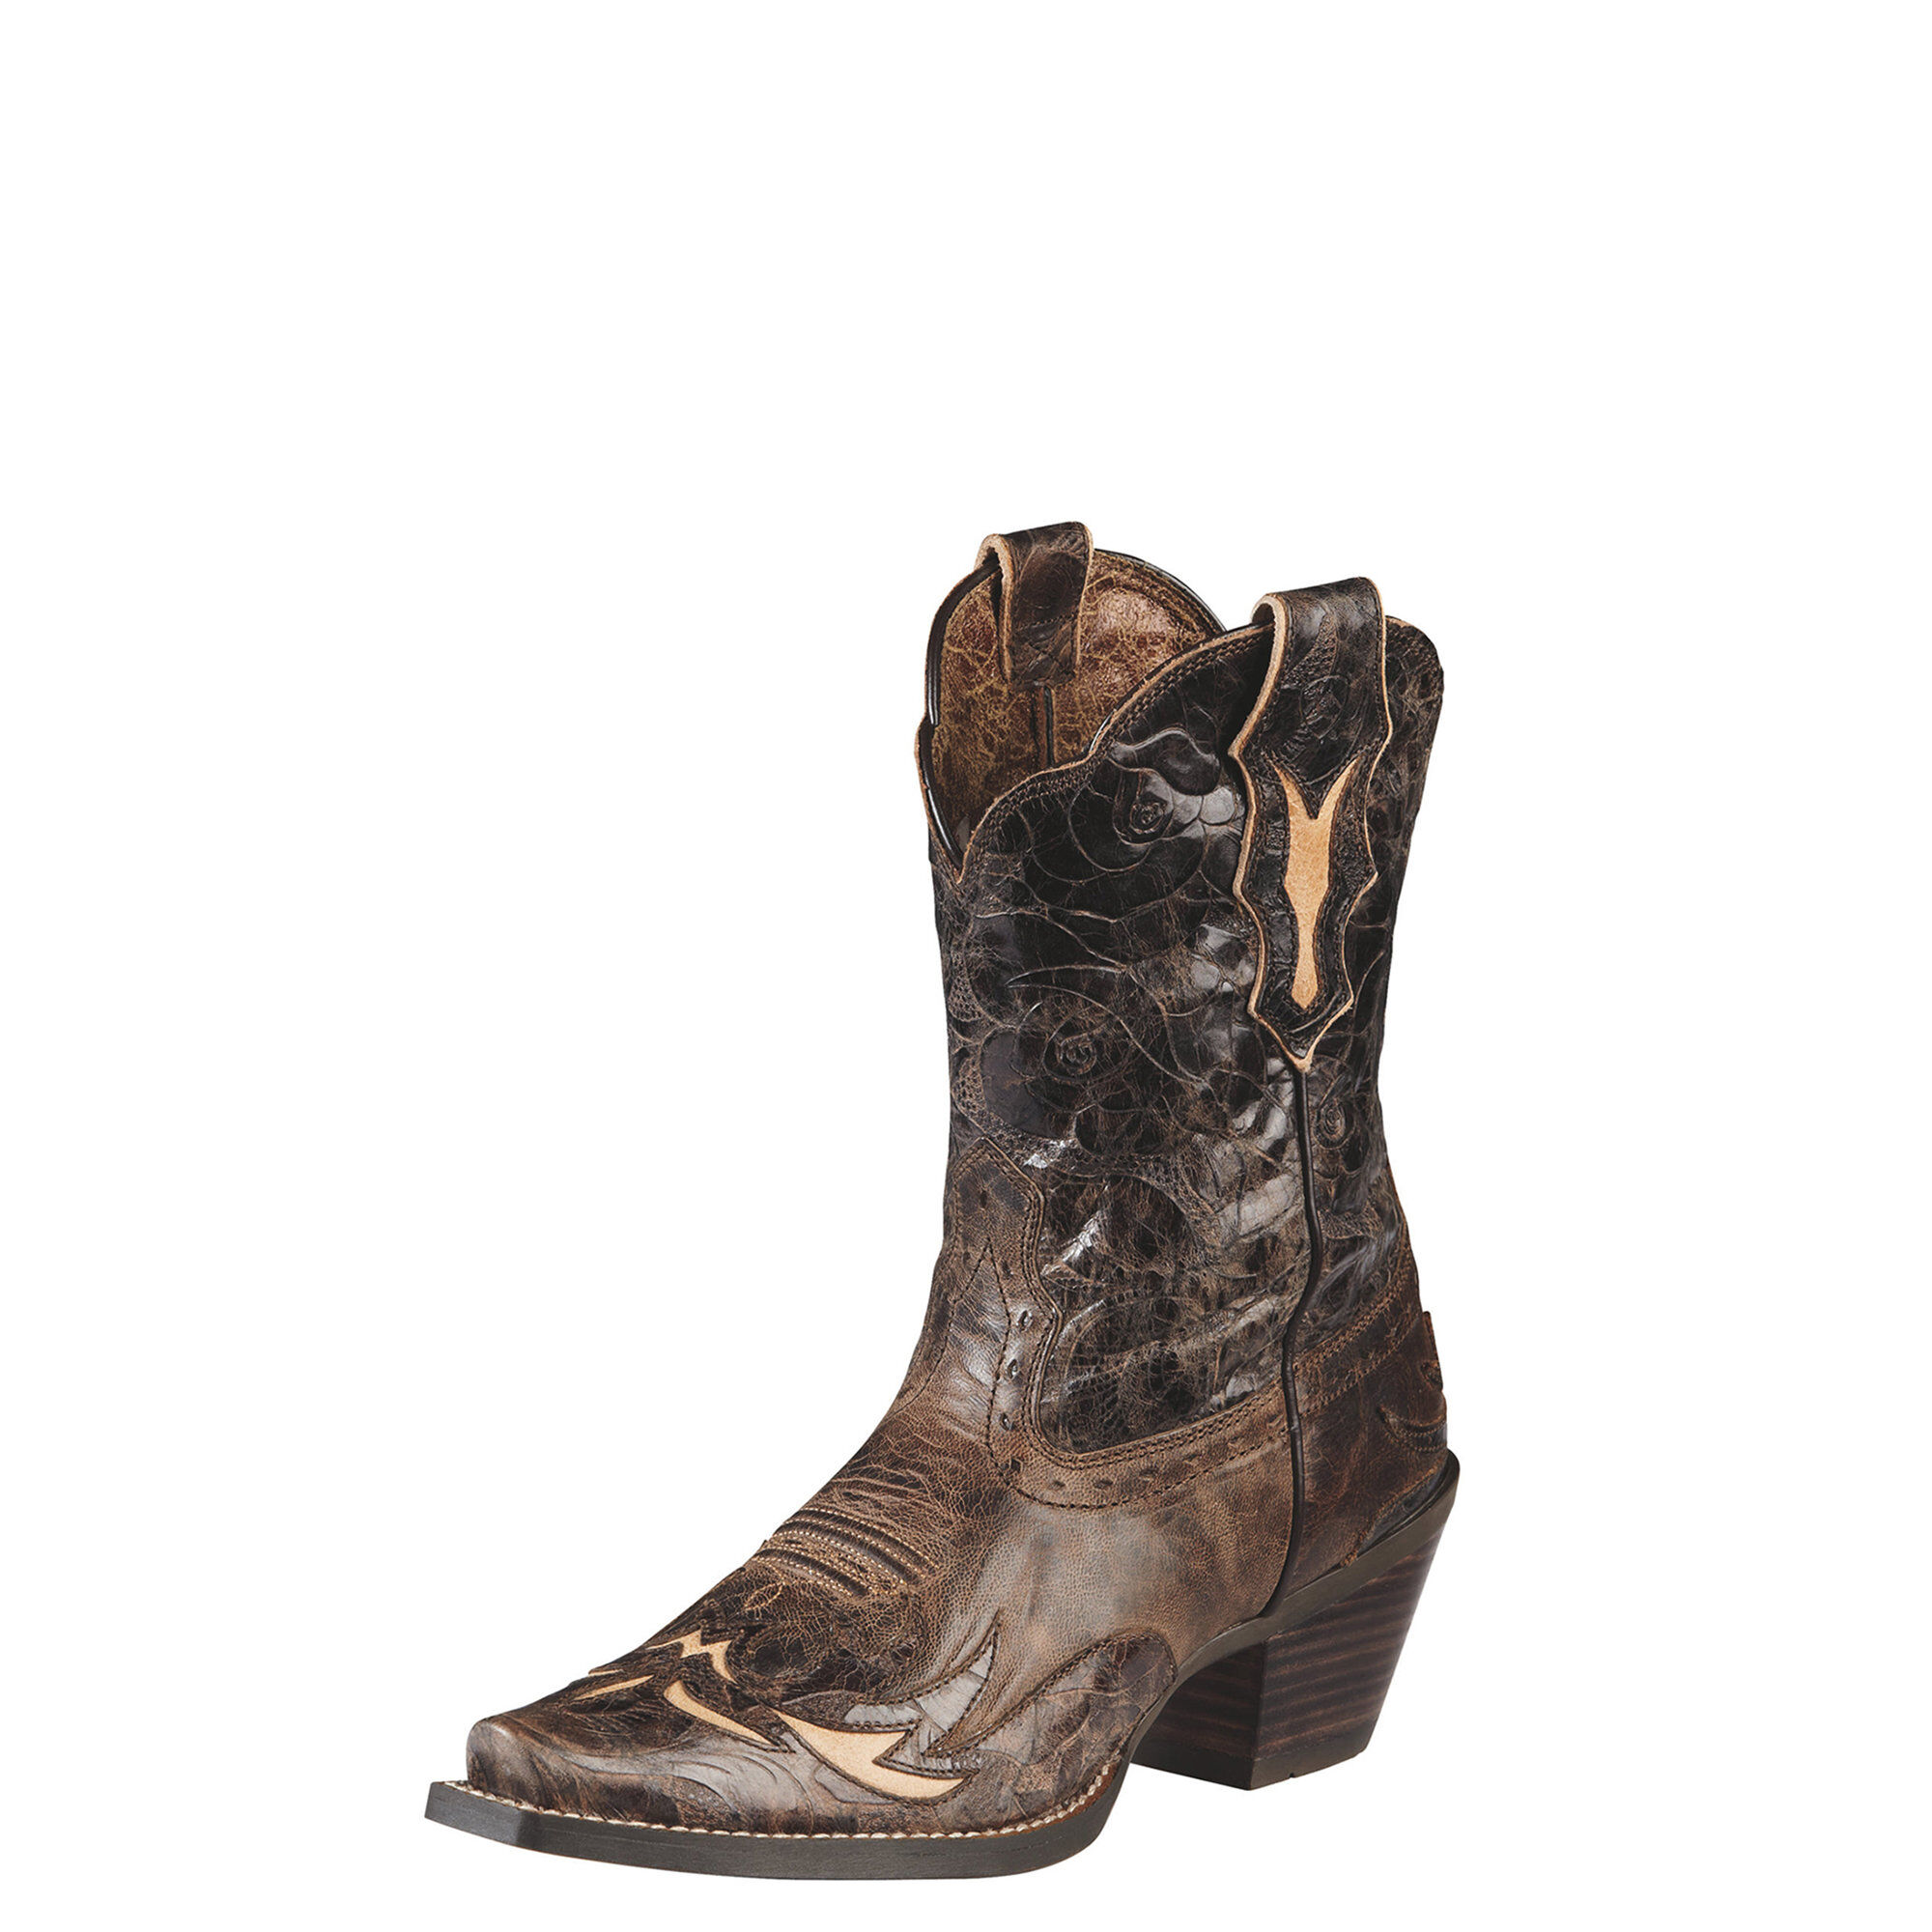 Ariat Women's Dahlia Western Boots in Silly Brown Leather